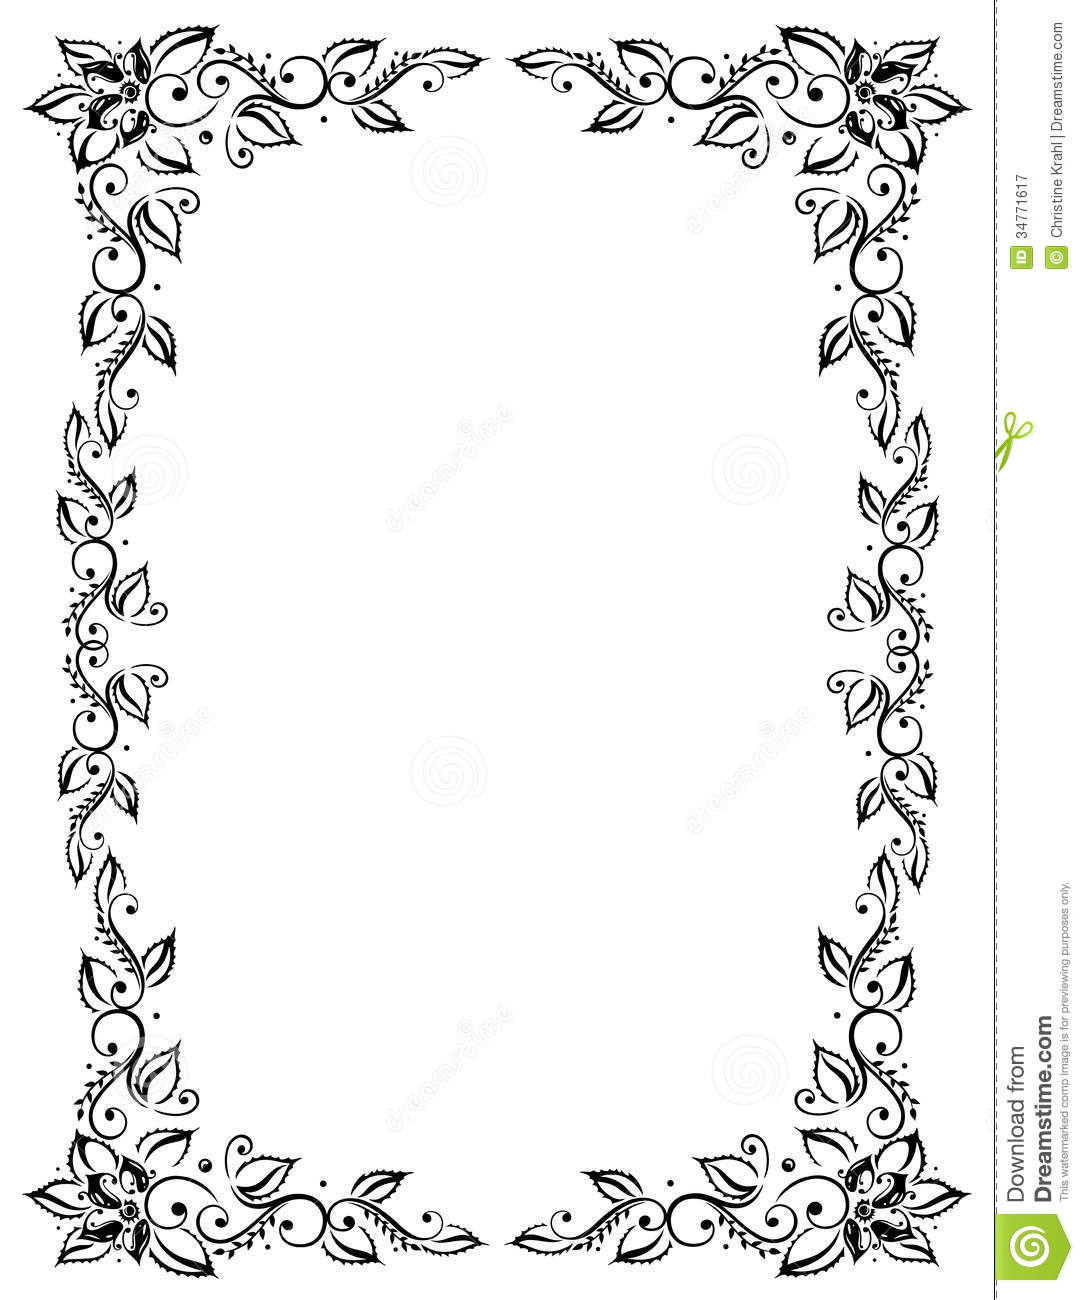 Filigree Square Border Clip Art Free Fundraw Pic 20 Pictures To Pin On